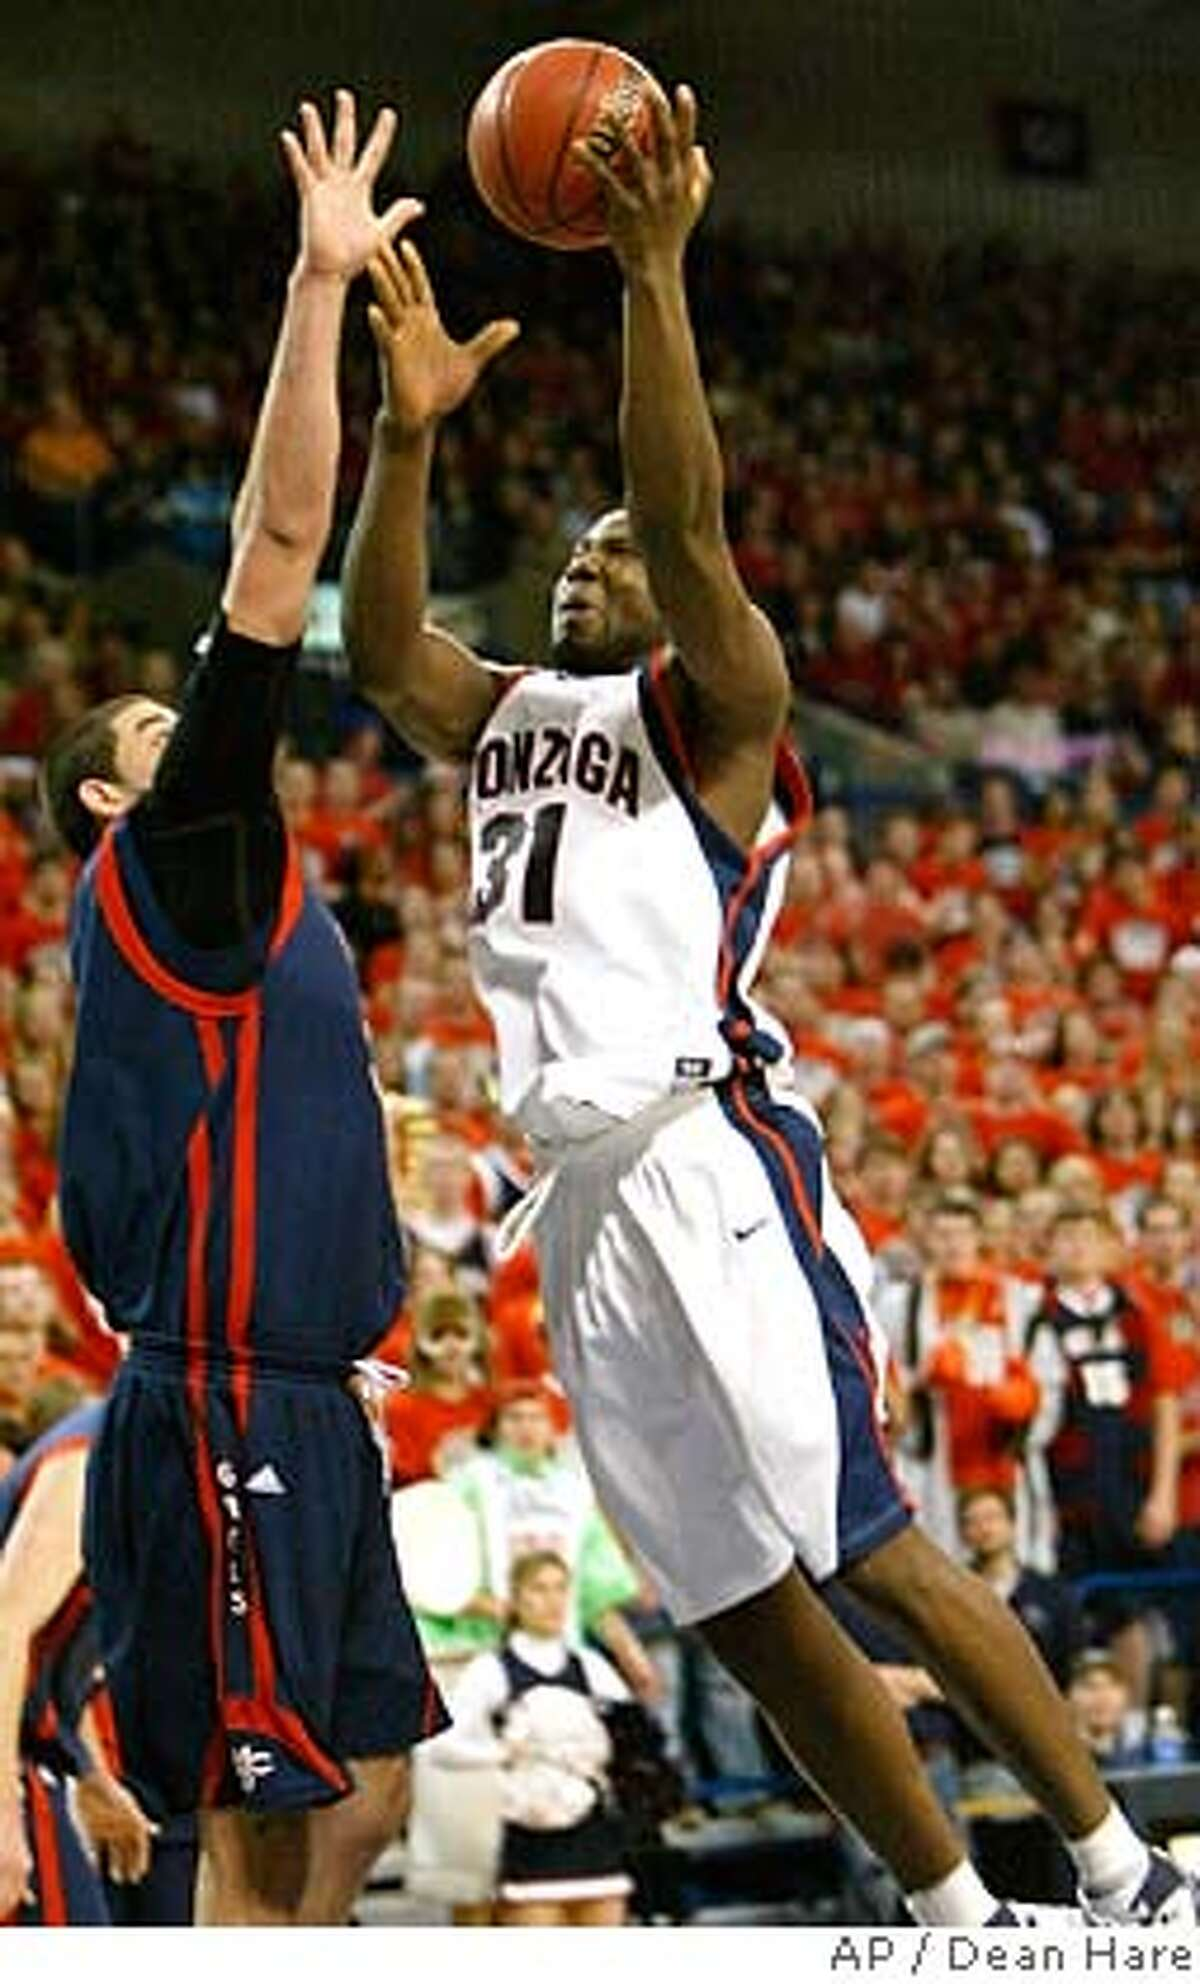 ###Live Caption:Gonzaga forward Abdullahi Kuso shoots over Saint Mary's center Omar Samhan during the first half of a basketball game Saturday, March 1, 2008, at the McCarthey Athletic Center in Spokane, Wash. (AP Photo/Dean Hare)###Caption History:Gonzaga forward Abdullahi Kuso shoots over Saint Mary's center Omar Samhan during the first half of a basketball game Saturday, March 1, 2008, at the McCarthey Athletic Center in Spokane, Wash. (AP Photo/Dean Hare)###Notes:Abdullahi Kuso, Omar Samhan###Special Instructions:EFE OUT